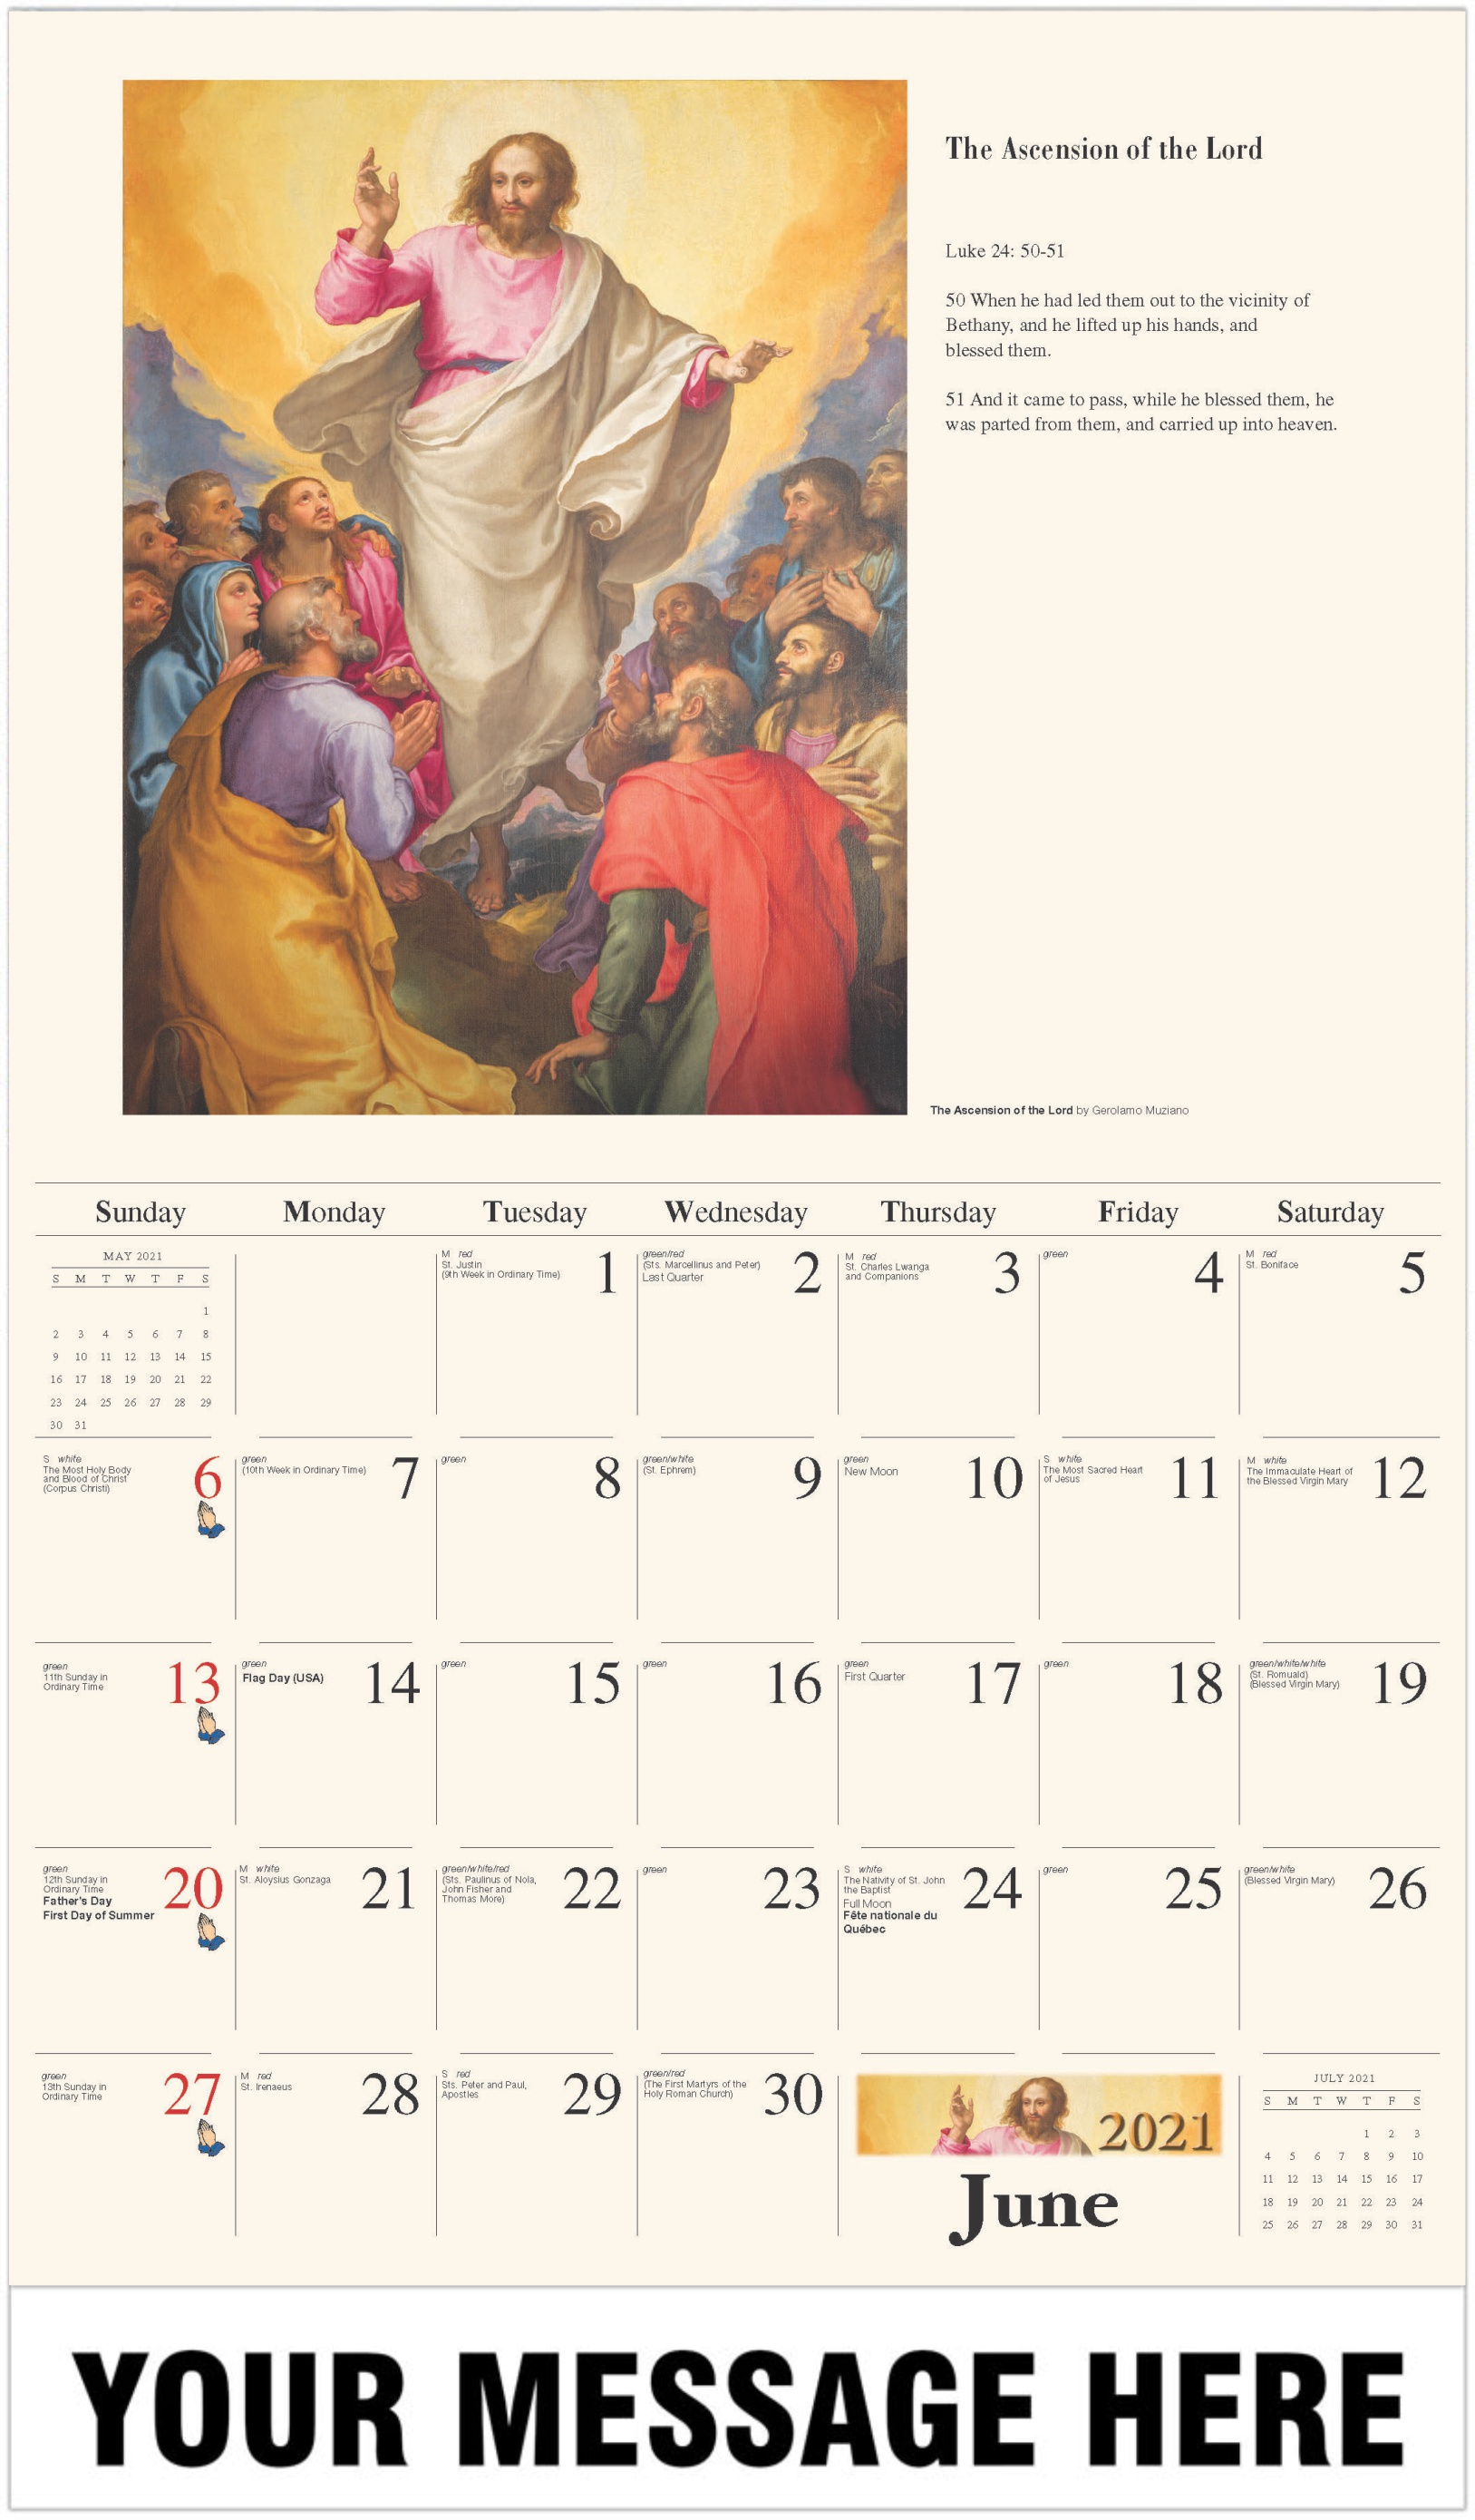 The Ascension - June - Catholic Inspiration 2021 Promotional Calendar